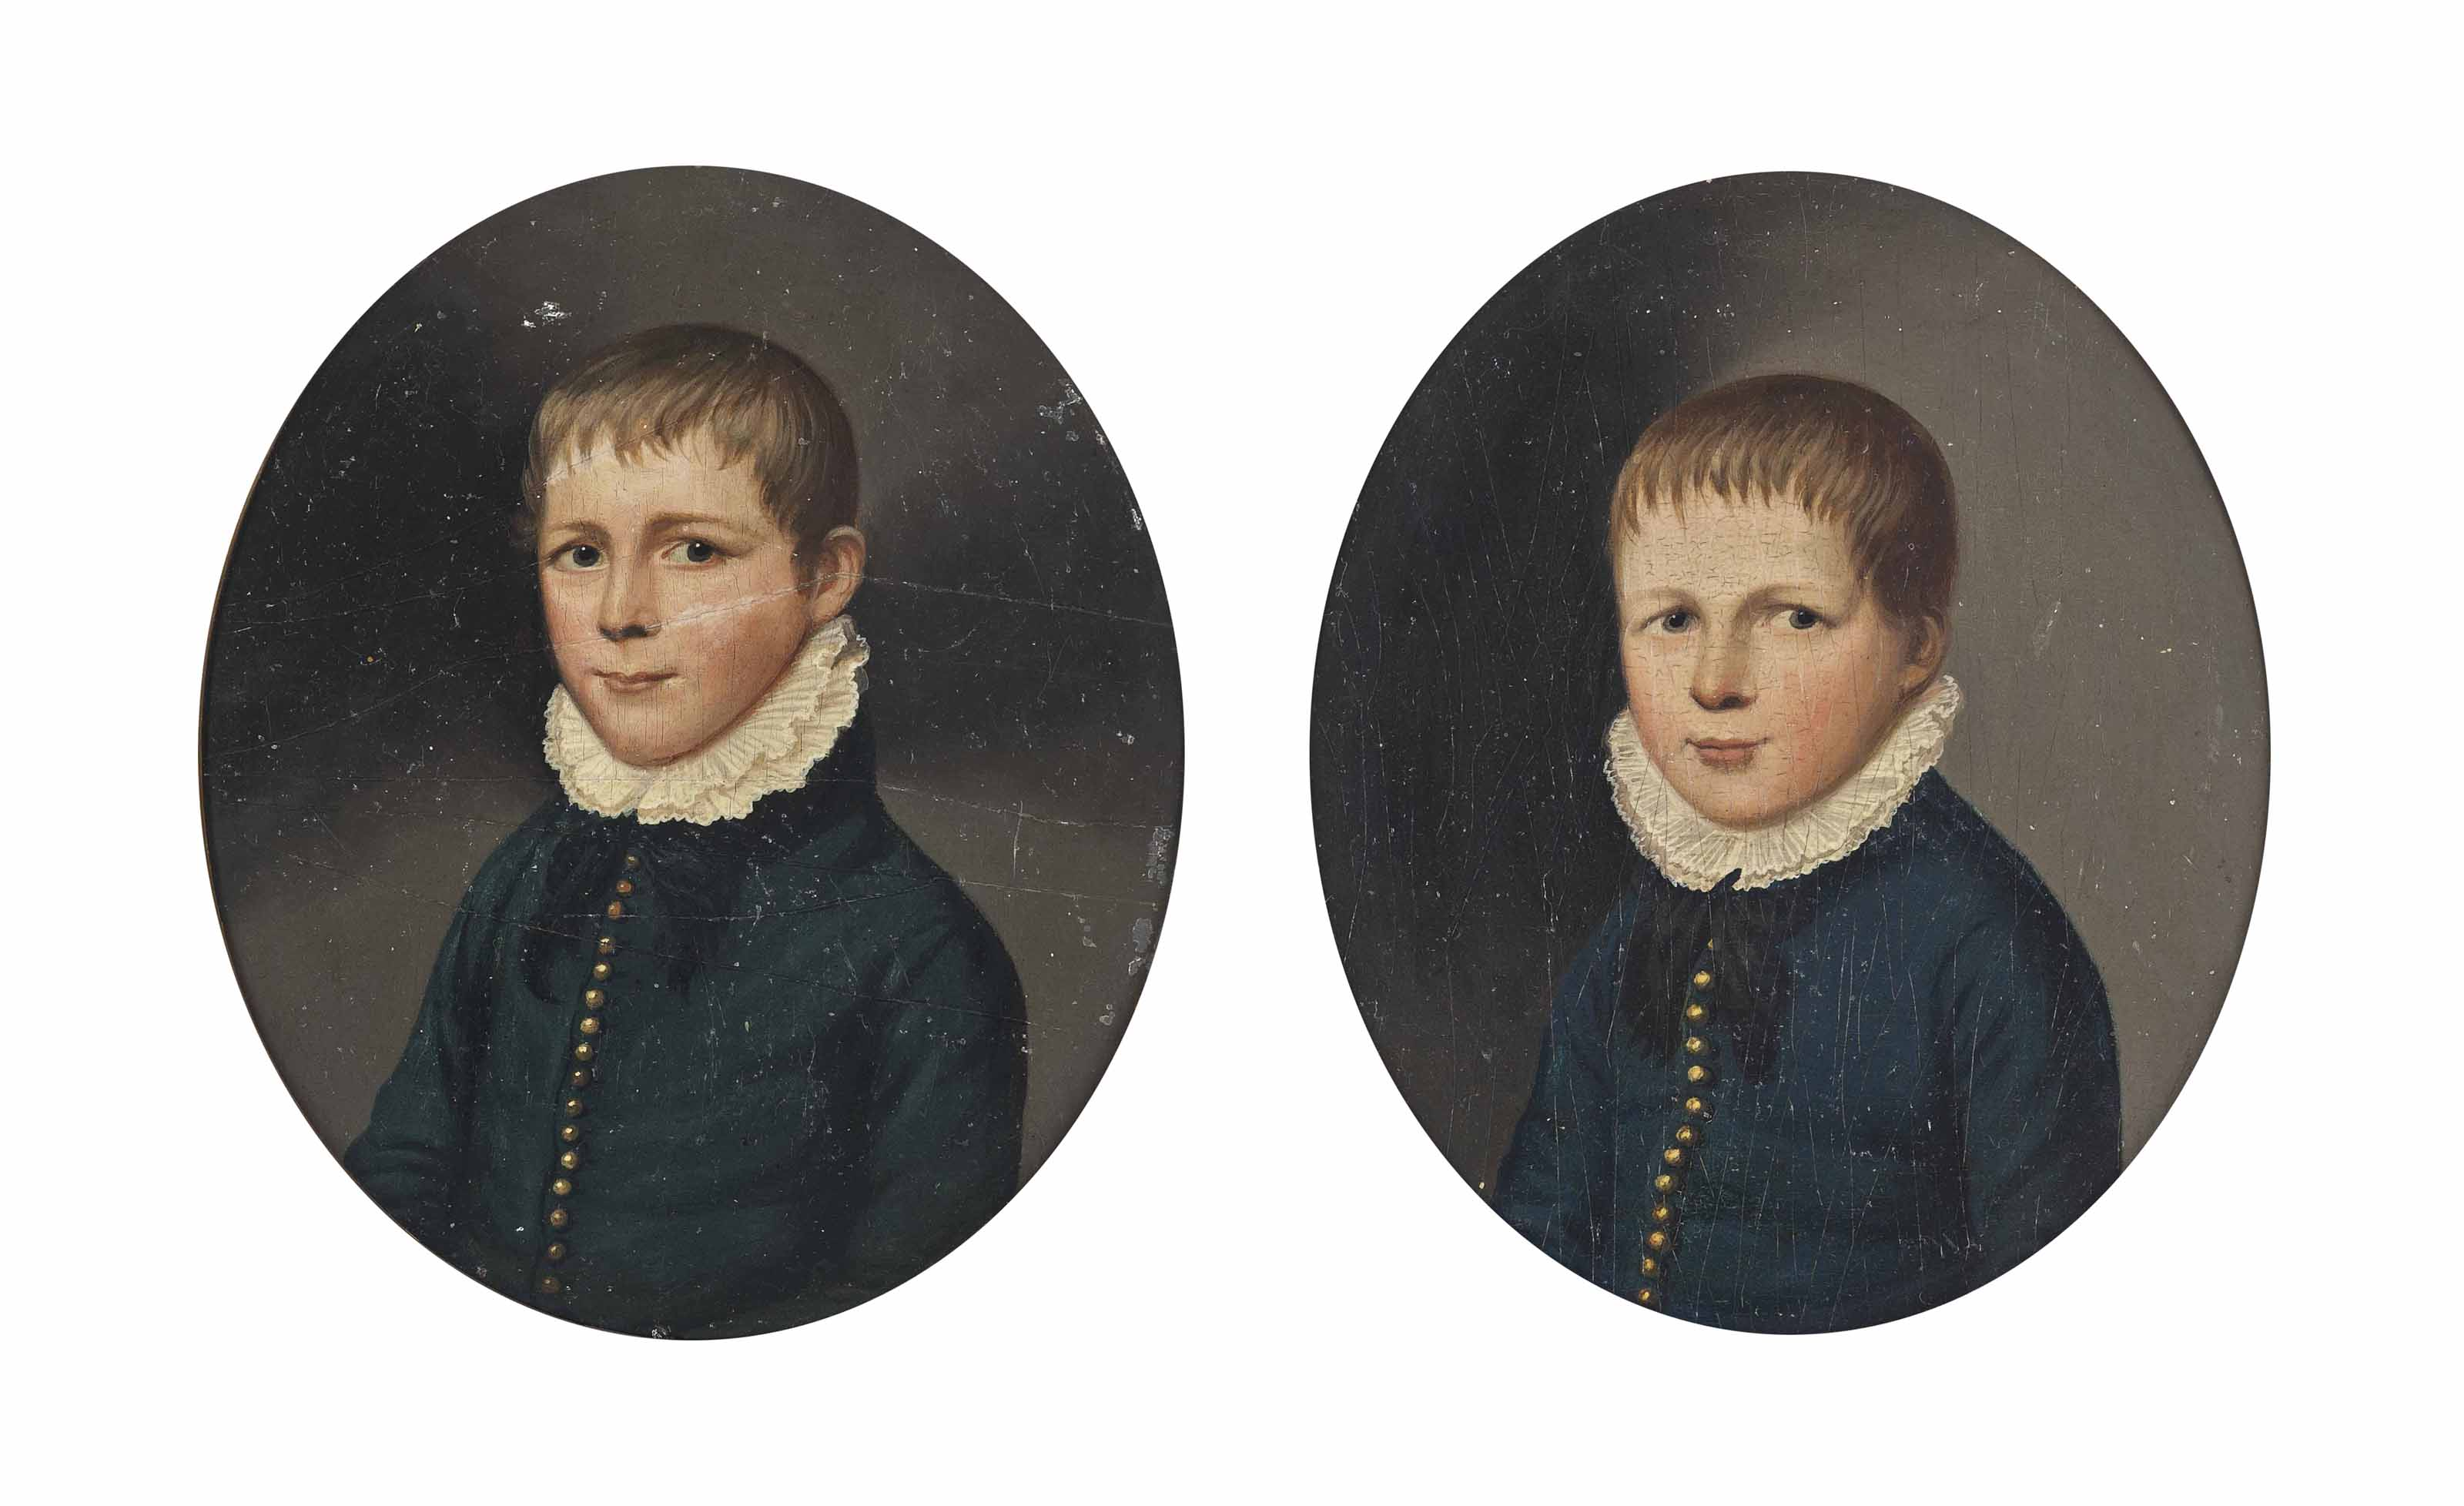 Portrait of  a young boy, bust length, thought to be a member of the Cholmondley family, wearing blue  jackets with white collar; and Another portrait of  a young boy, half length, thought to be a member of the Cholmondley family, wearing blue jackets with white collar